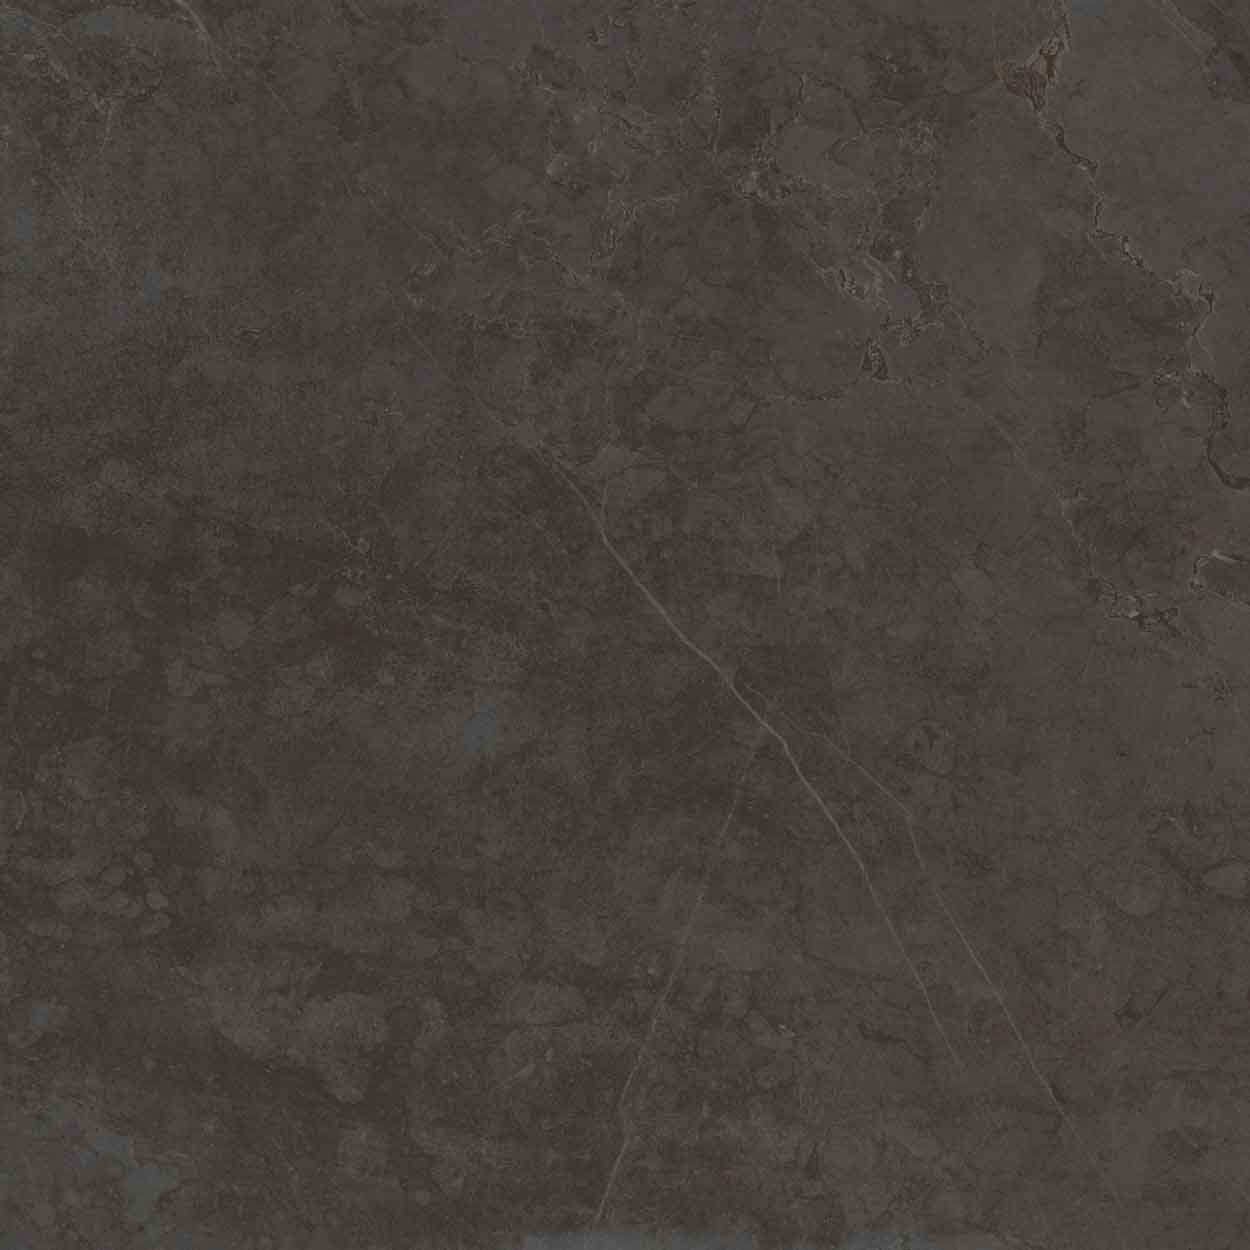 Mar. Royal Antracite Glossy 10mm 60 x 60